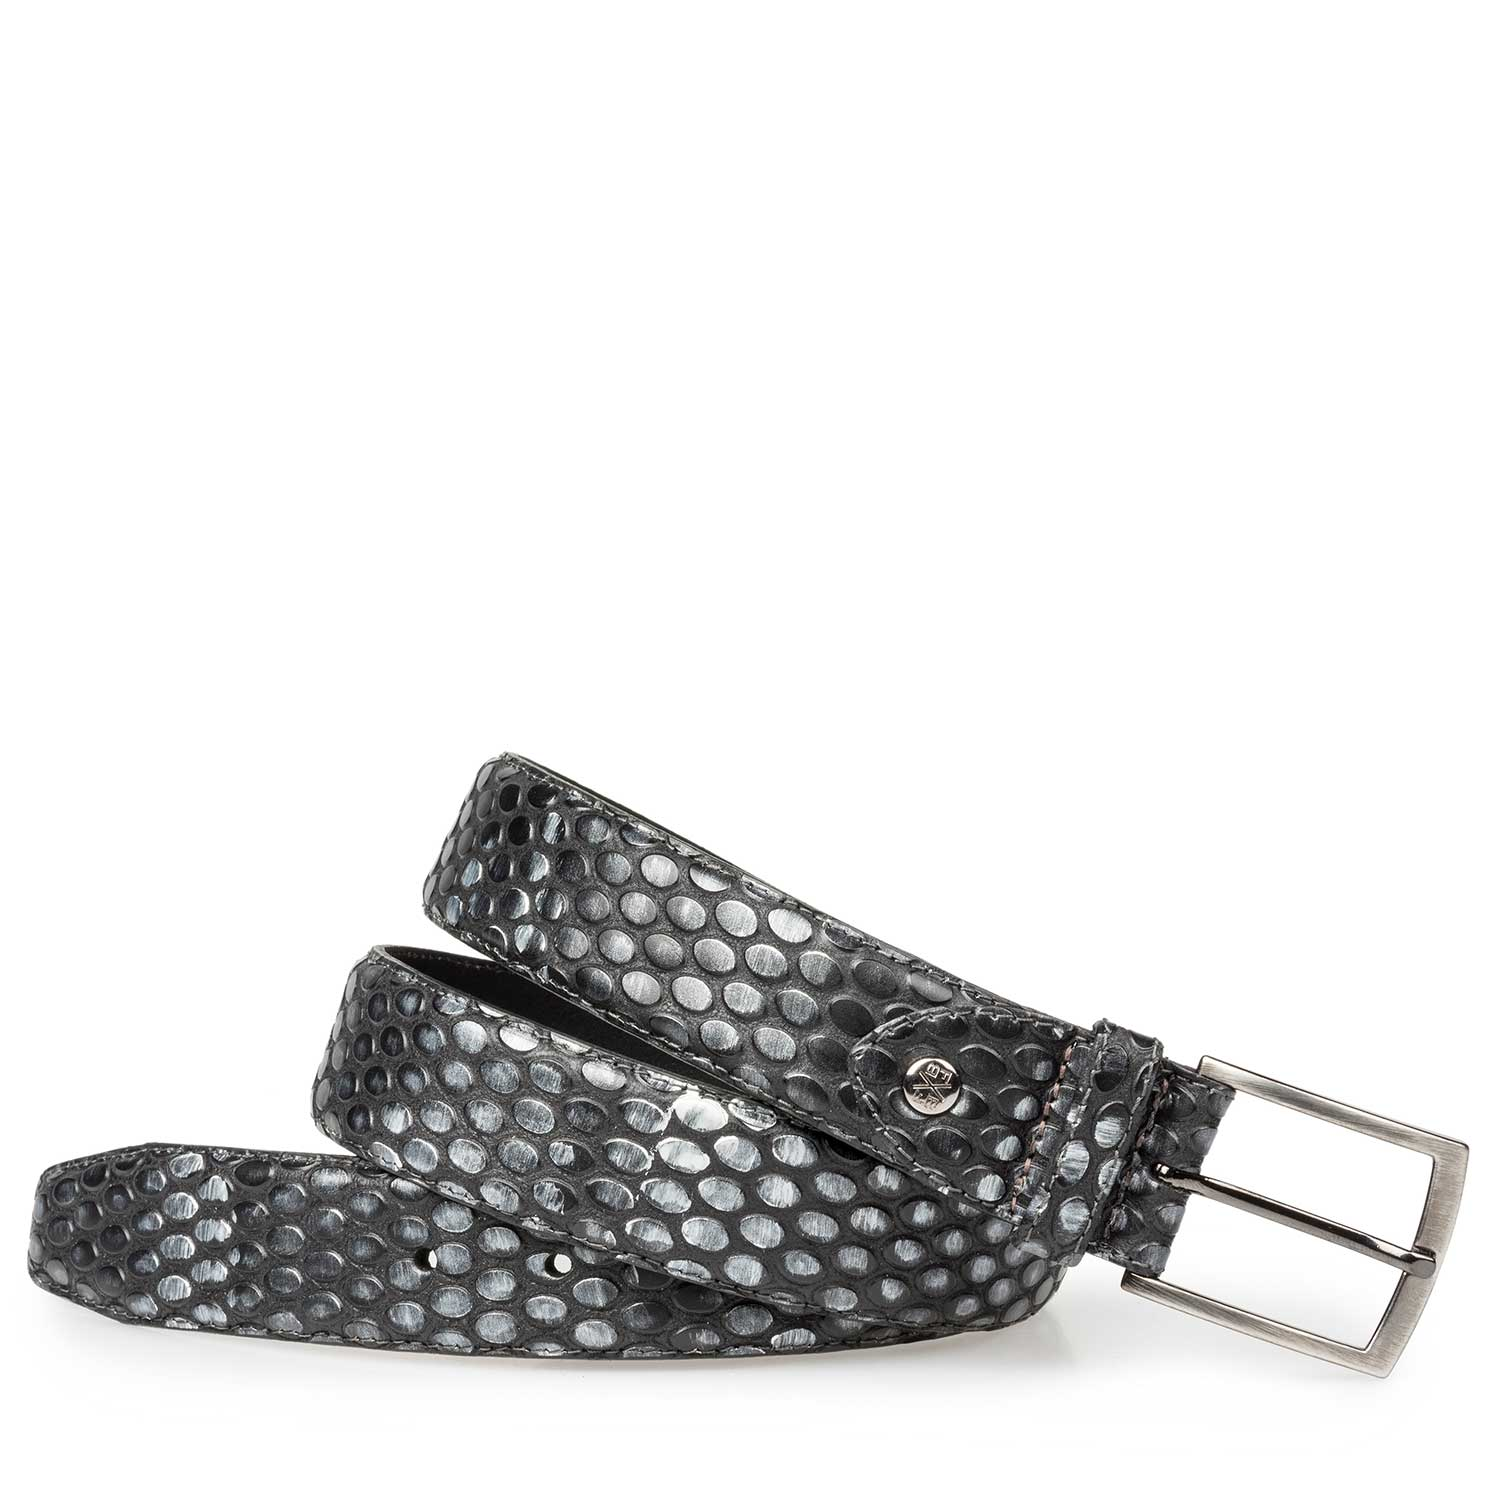 75190/13 - Silver-coloured leather belt with coffee bean print